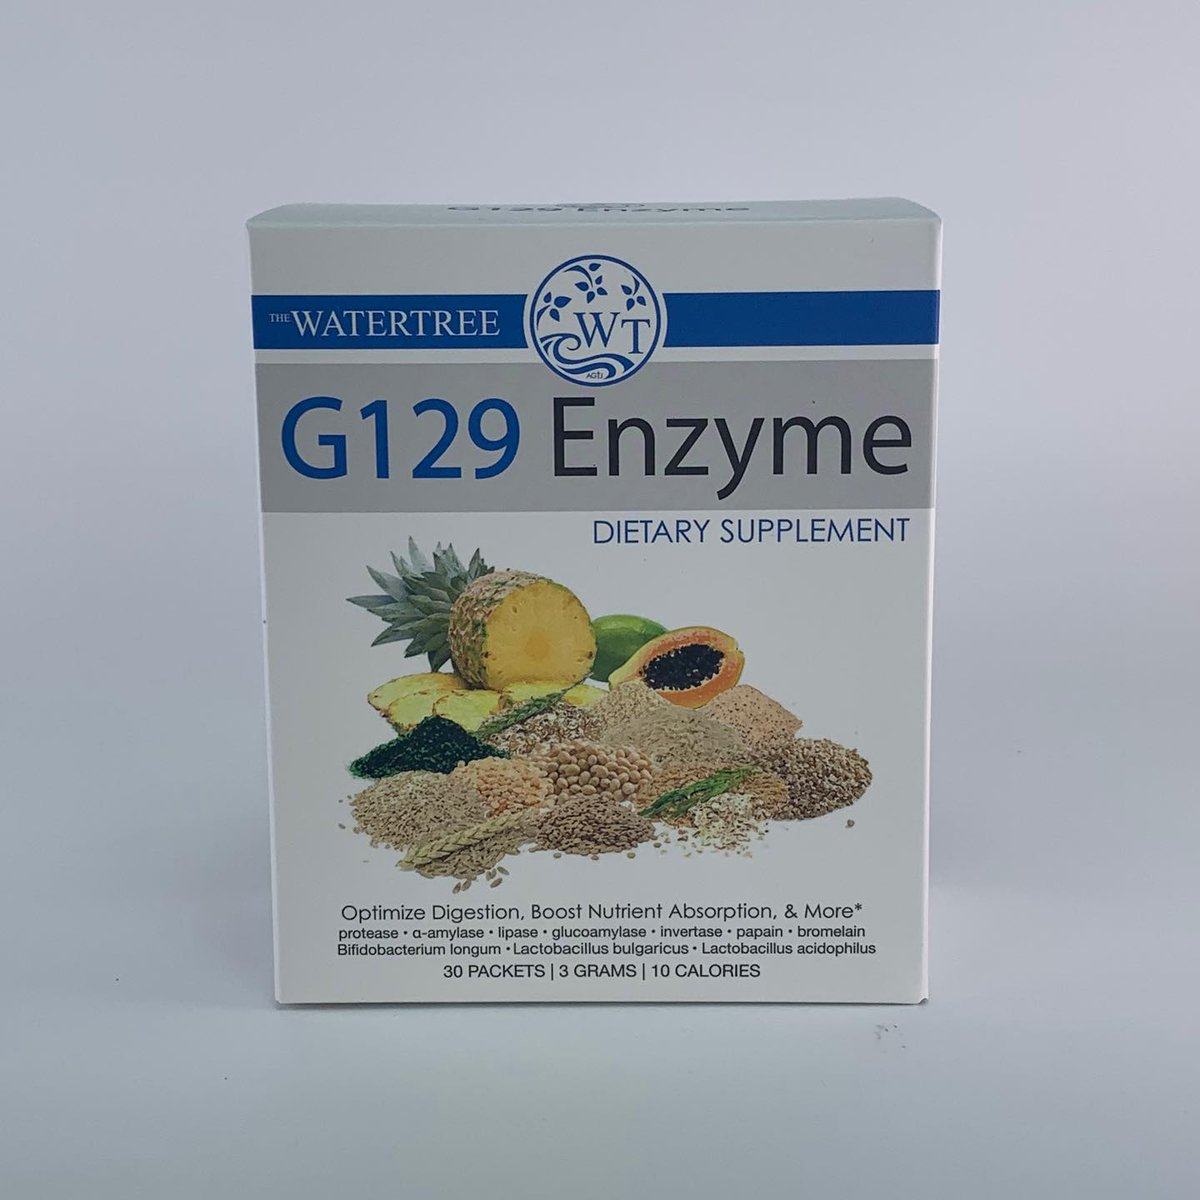 Optimize digestion, boost nutrient absorption & more with G129 Enzyme dietary supplement  @DreamTreeFam  5757 Ranchester Dr. Houston, TX. 77072 . . . . . .  #alkaline #houston #texas #houstontx #localbusiness #watertree #healthiswealth #G129 #enzymes #supplement # #pic.twitter.com/5uW4FEjhdh